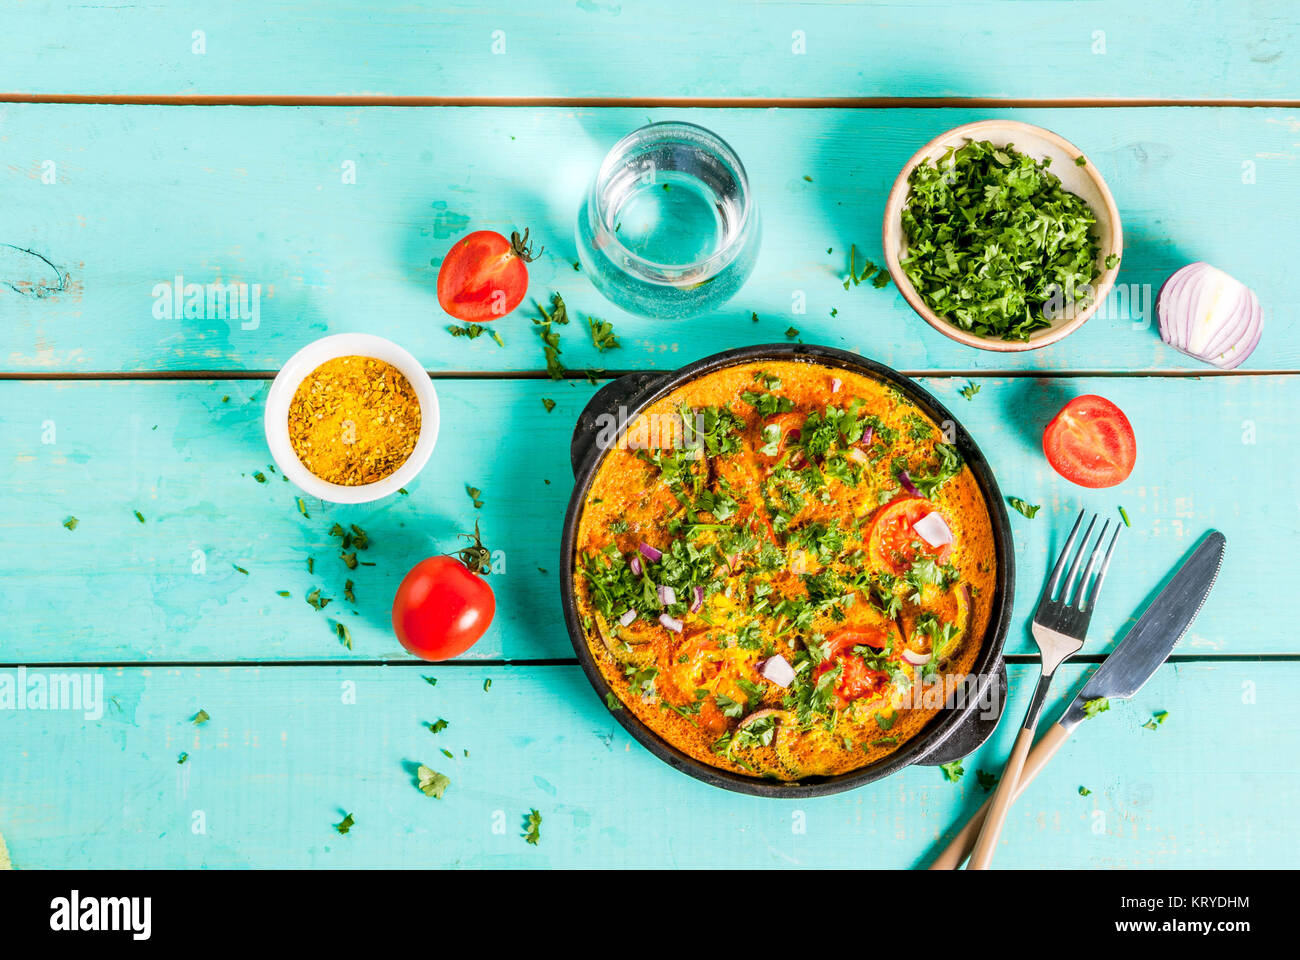 Indian food recipes indian masala egg omelet with fresh indian food recipes indian masala egg omelet with fresh vegetables tomato hot chili pepper parsley light blue wooden background copy space top forumfinder Image collections